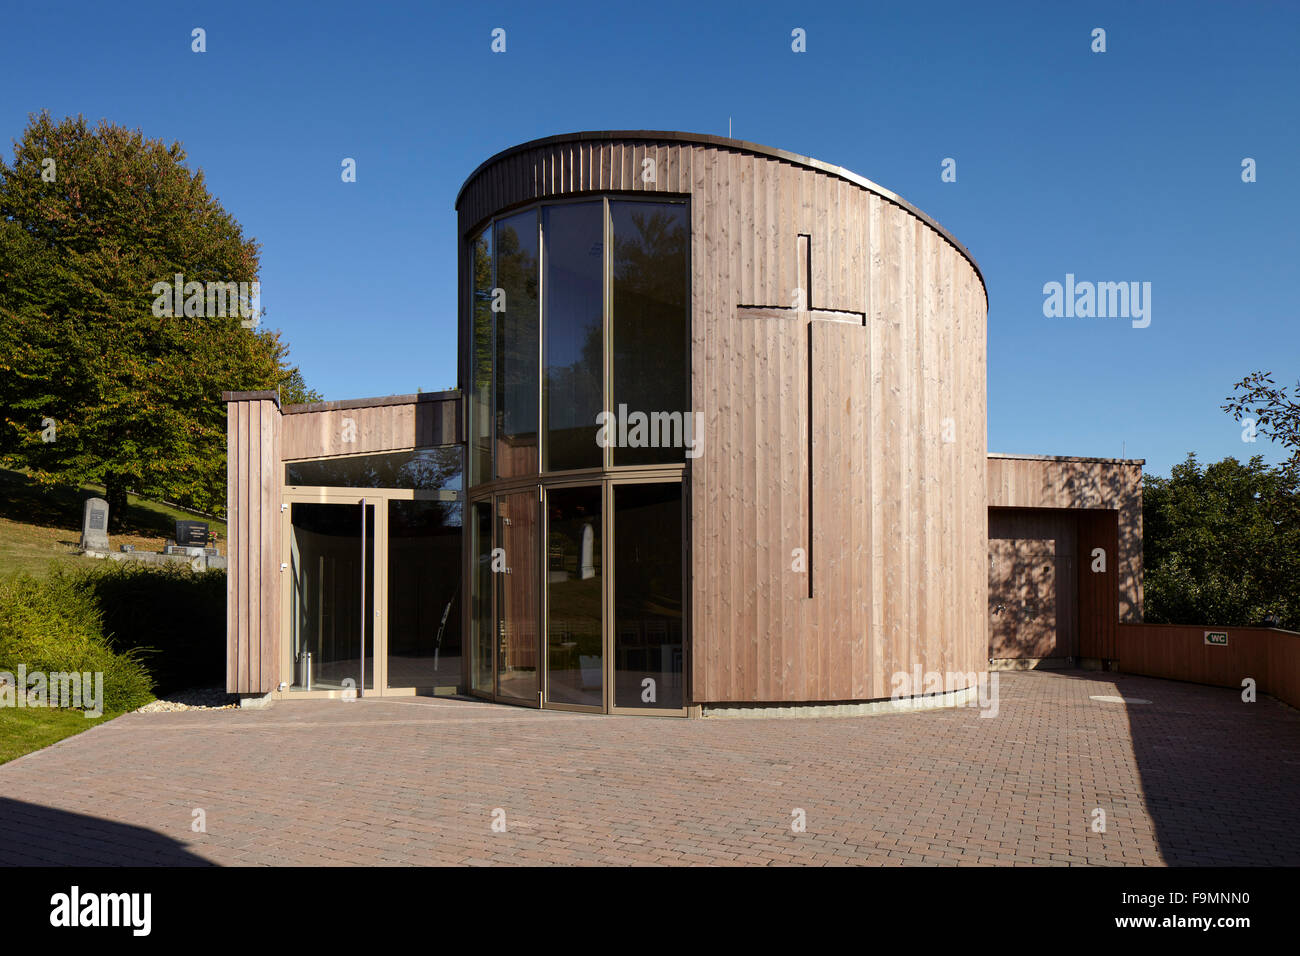 Exterior of a modern cemetery chapel with full height glazed windows at Oberwart, Austria - Stock Image